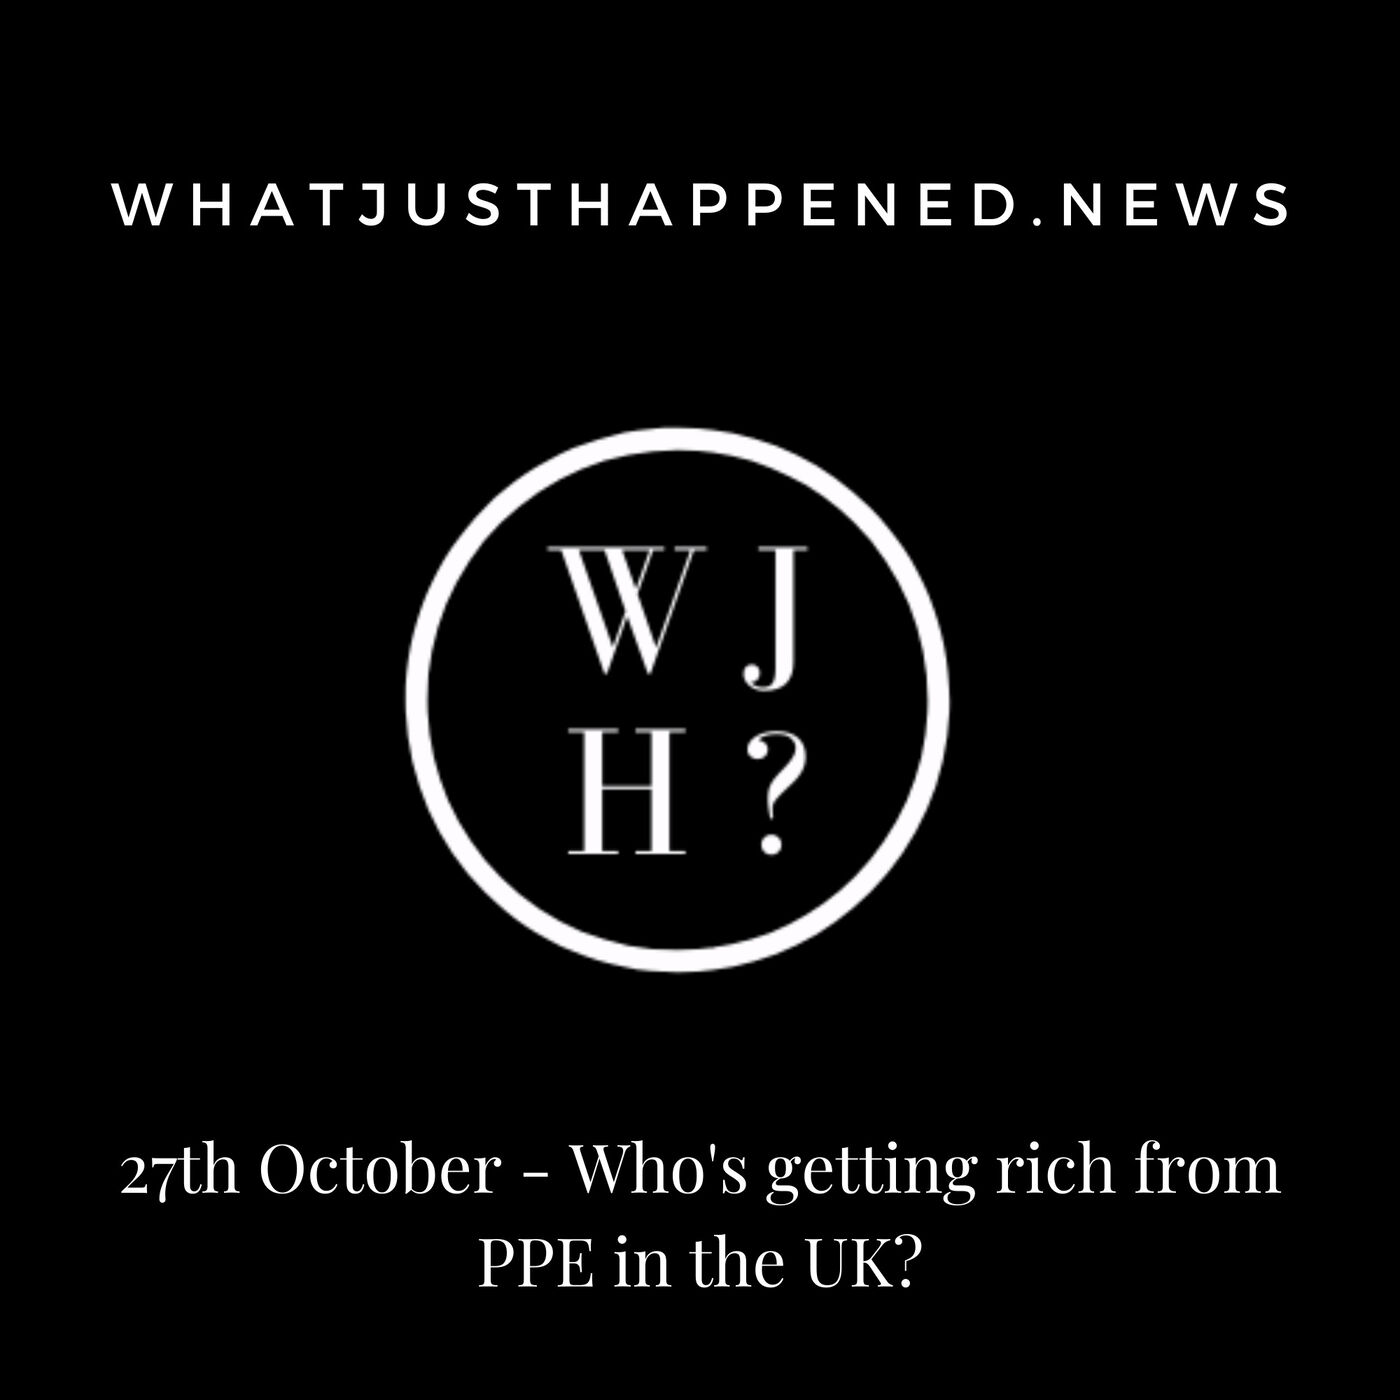 Bonus: Who's Getting Rich from PPE in the UK? (27th October)